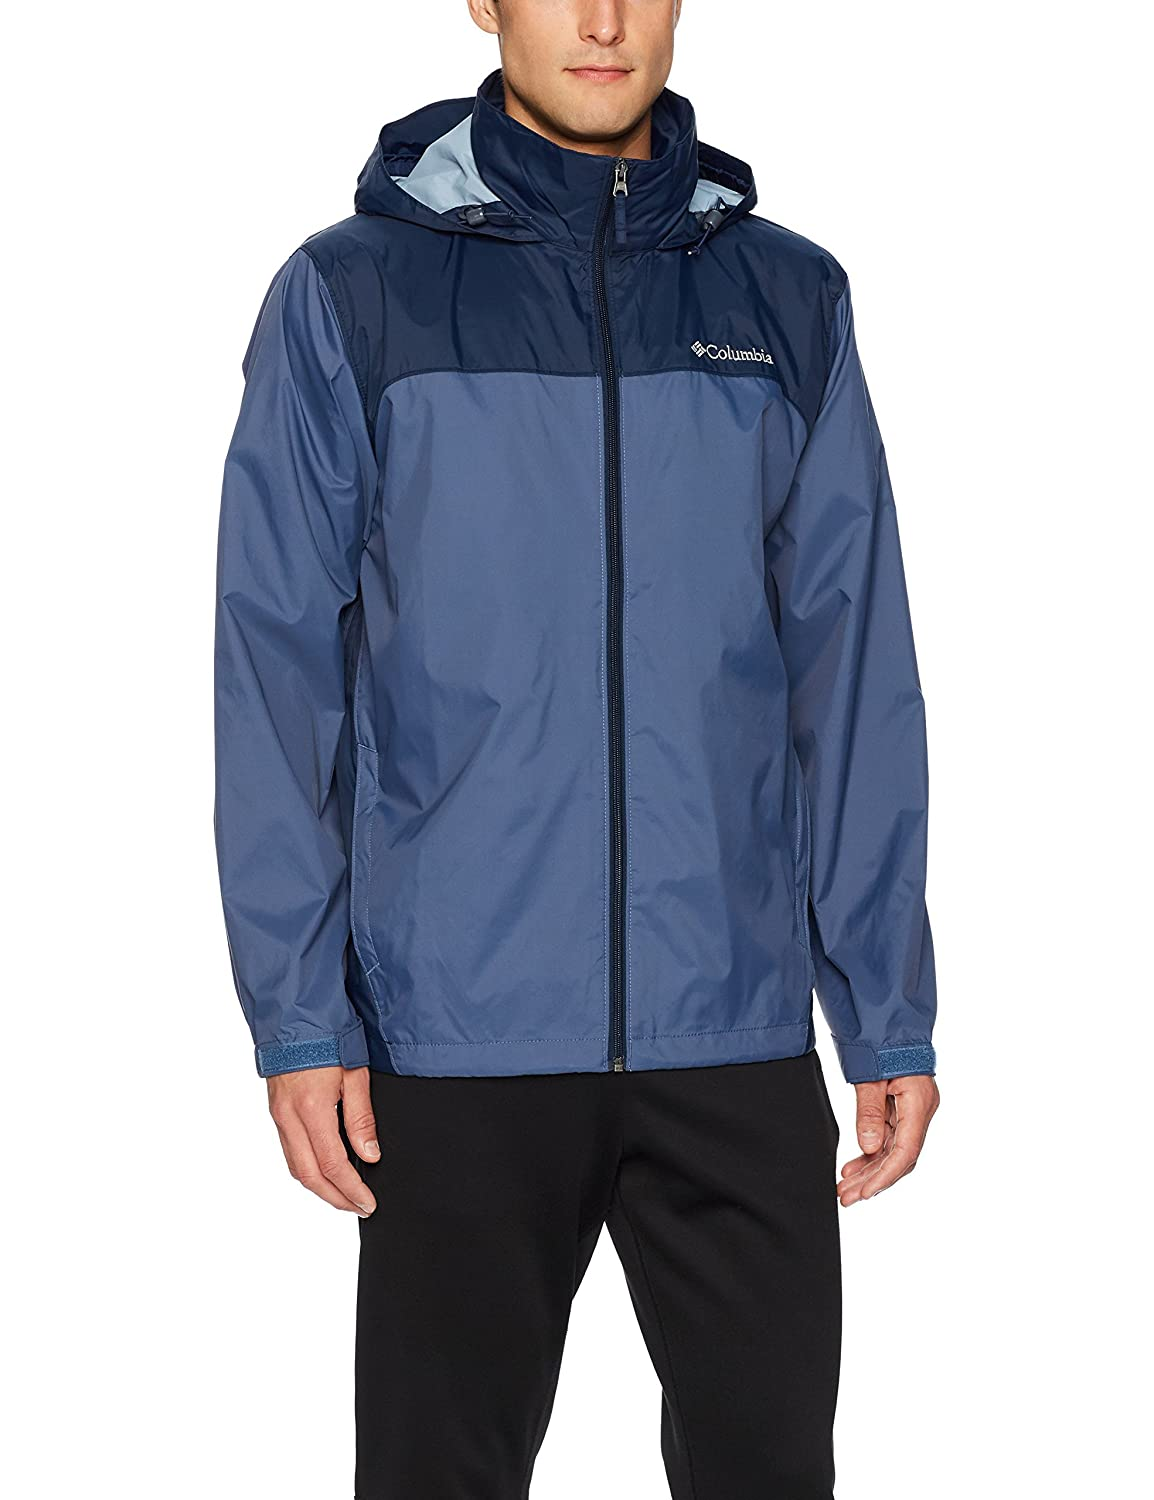 (コロンビア) Columbia GLENNAKER LAKE RAIN ジャケット RM2015 [メンズ] B01NAGEAF6 Large|Dark Mountain, Collegiate Navy Dark Mountain, Collegiate Navy Large